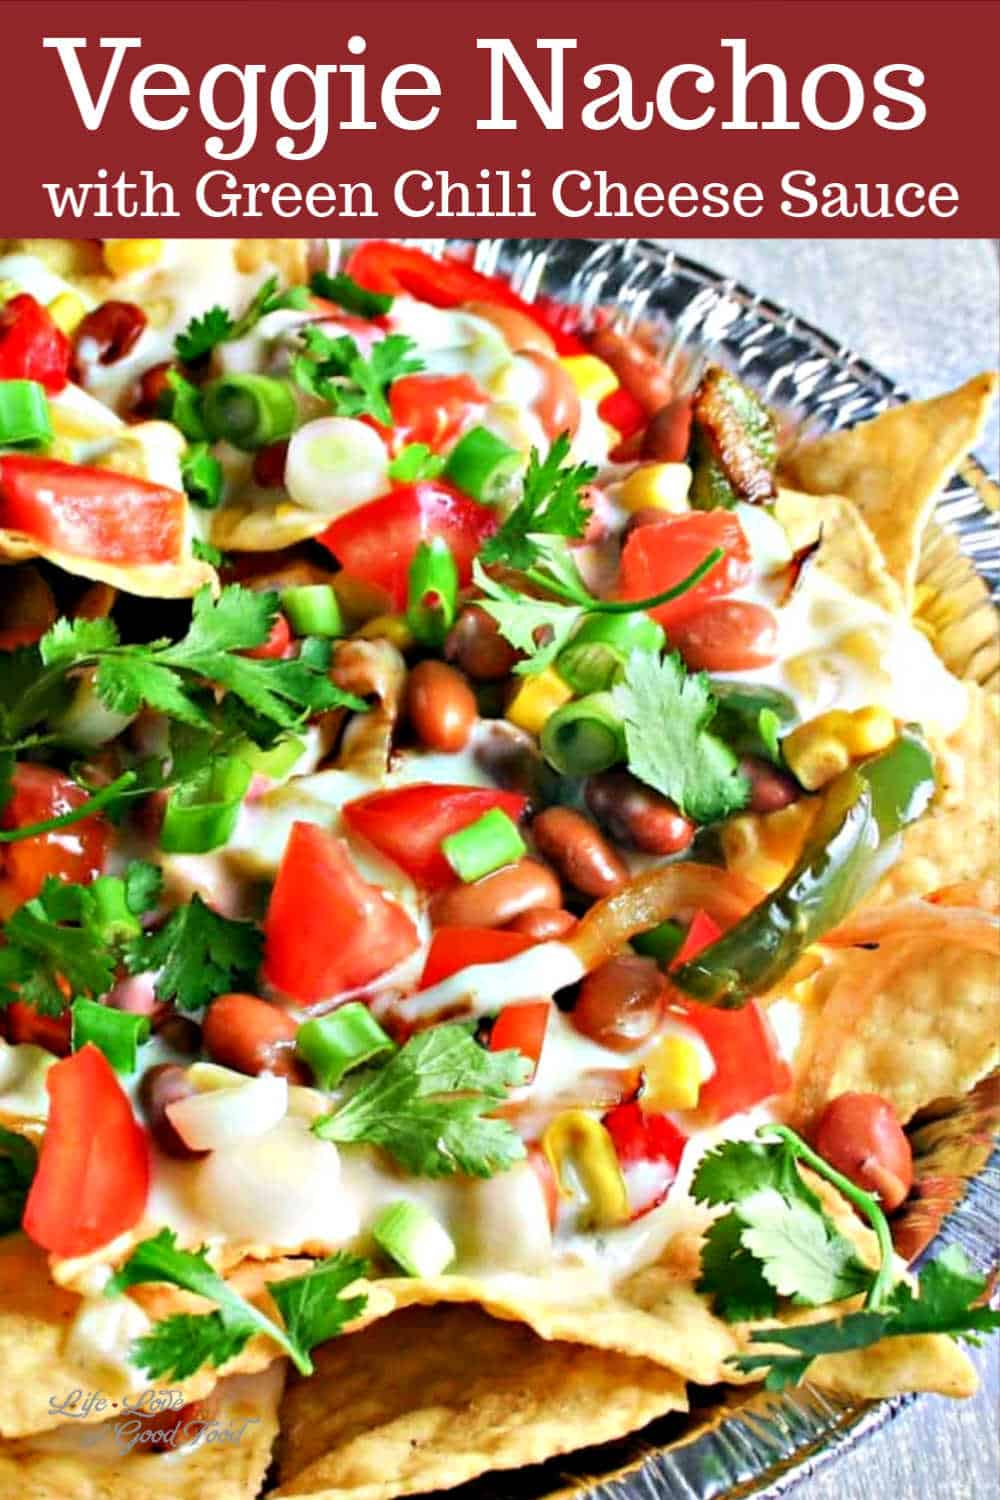 These loaded Vegetarian Nachos piled high with sautéed onions and peppers, pinto beans, and sweet corn are smothered with a creamy green chili cheese sauce.